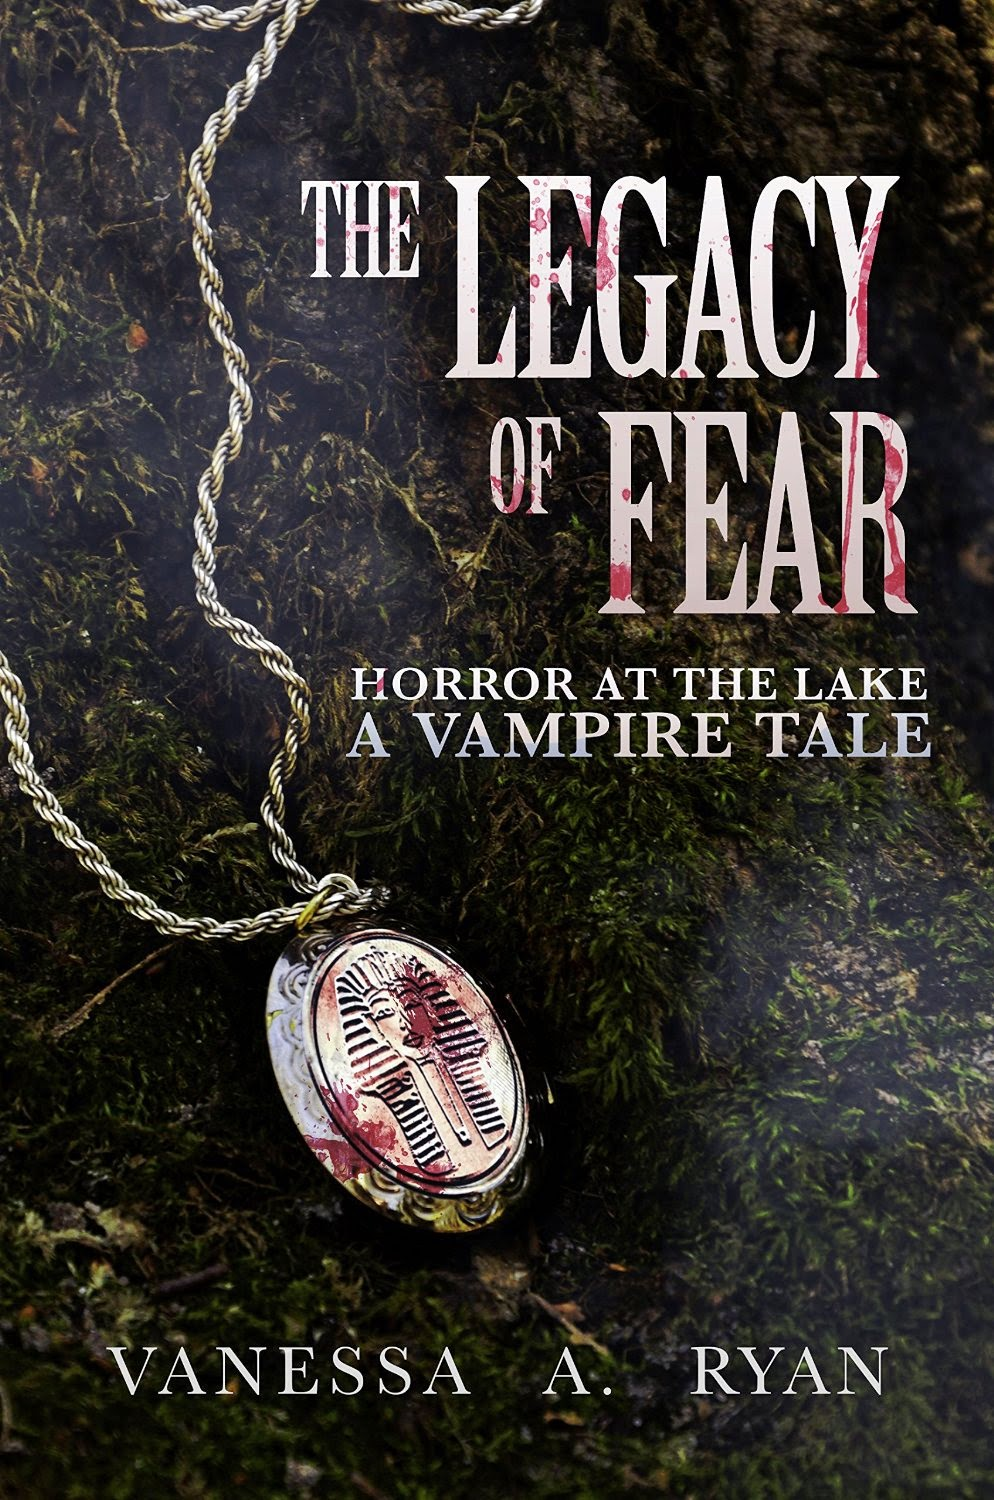 http://www.amazon.com/Legacy-Fear-Horror-Lake-Vampire-ebook/dp/B00SXVHWFO/ref=sr_1_1?ie=UTF8&qid=1423590543&sr=8-1&keywords=vanessa+ryan